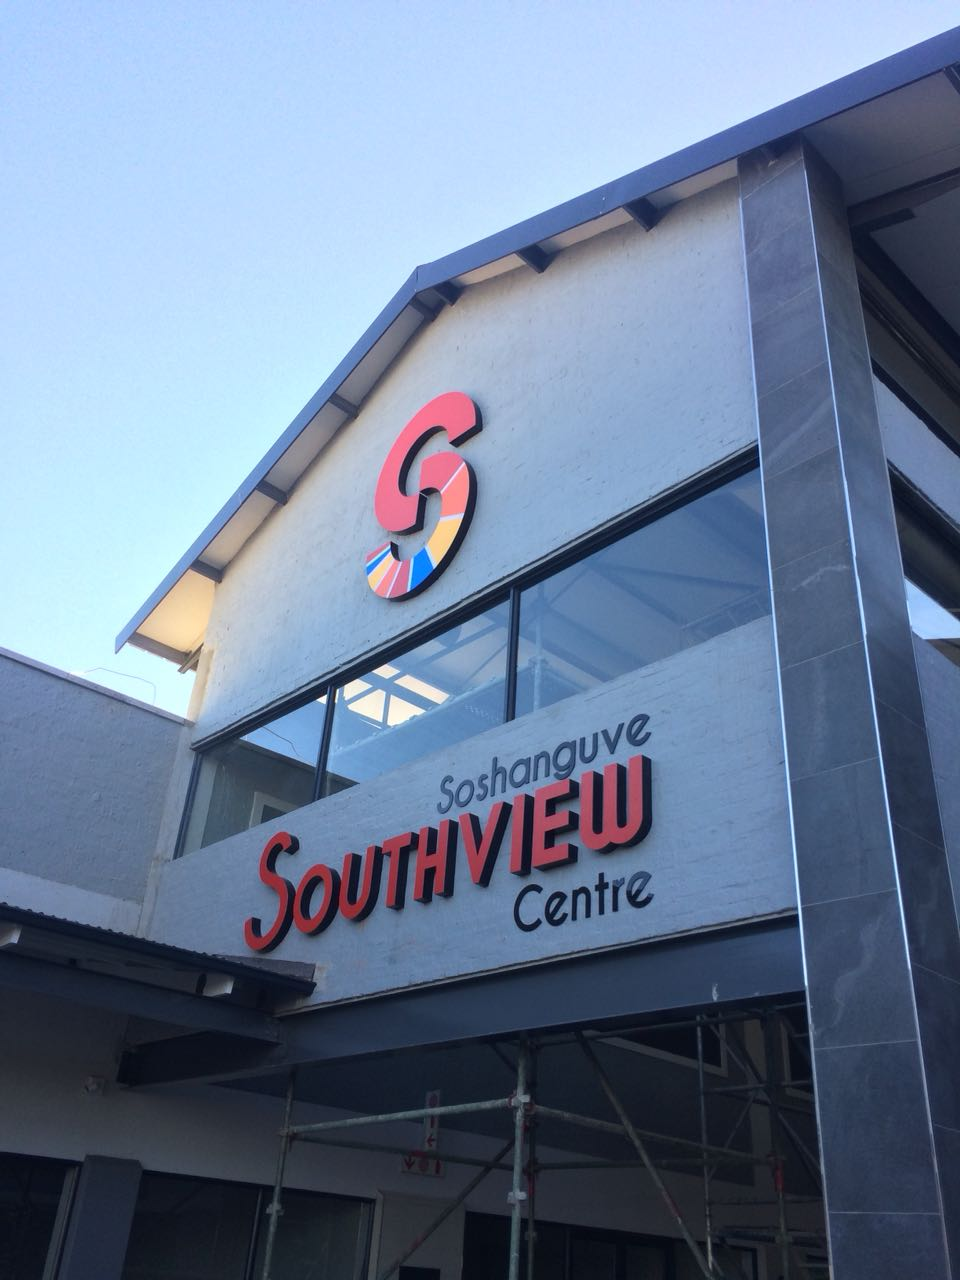 3D Southview Centre